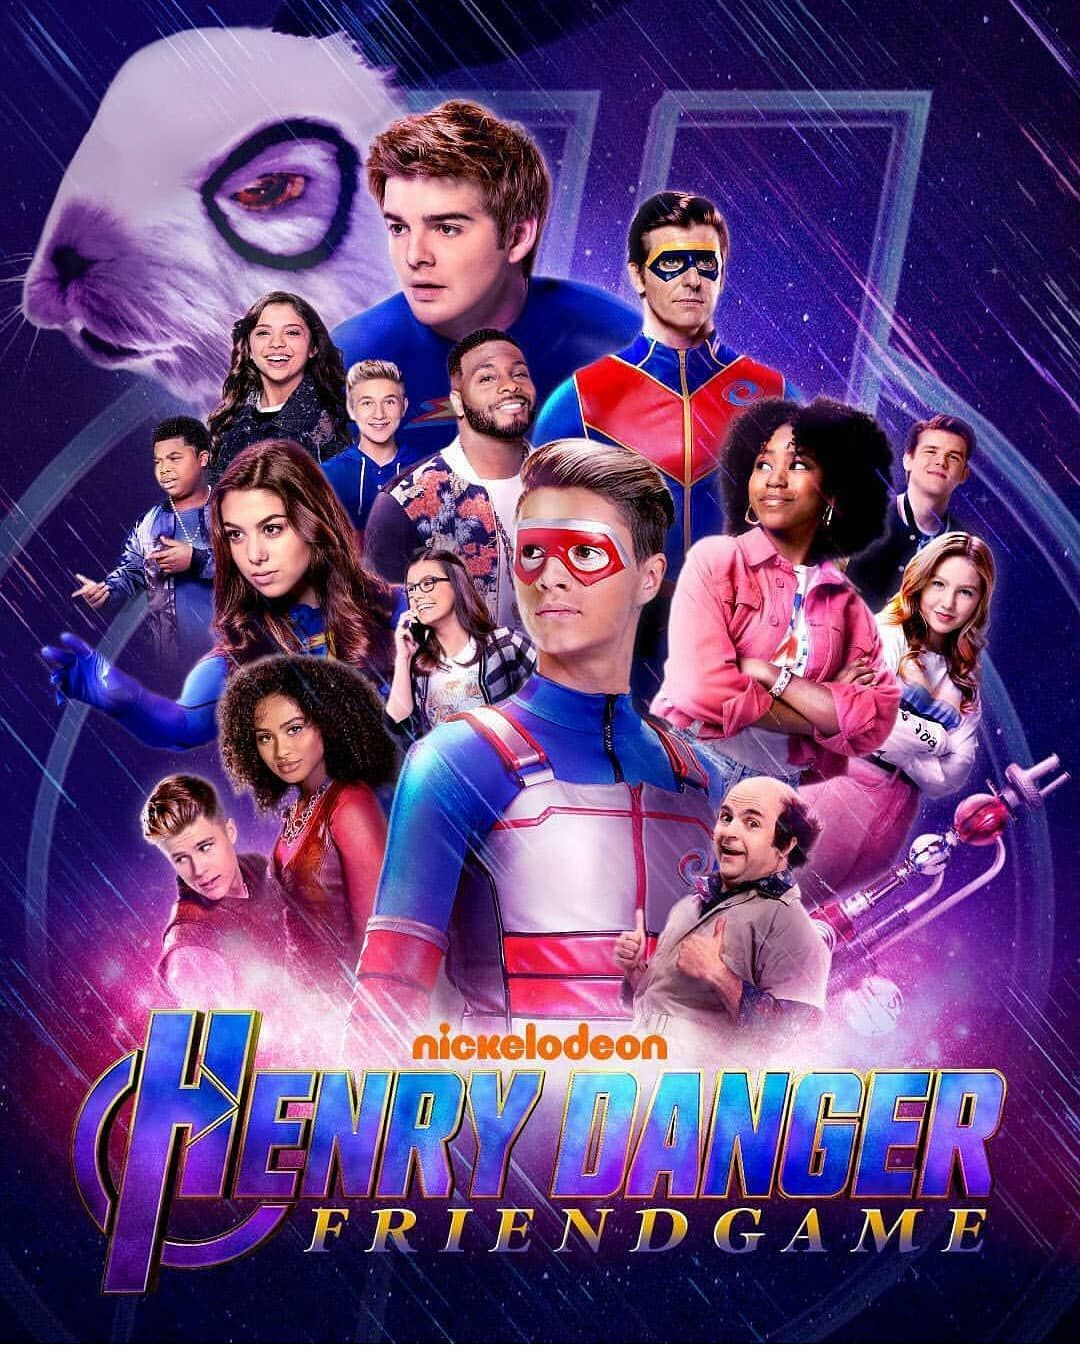 Henry Danger Final Episode : henry, danger, final, episode, Image, Contain:, People,, People, Standing, Nickelodeon, Shows,, Thundermans,, Henry, Danger, Norman